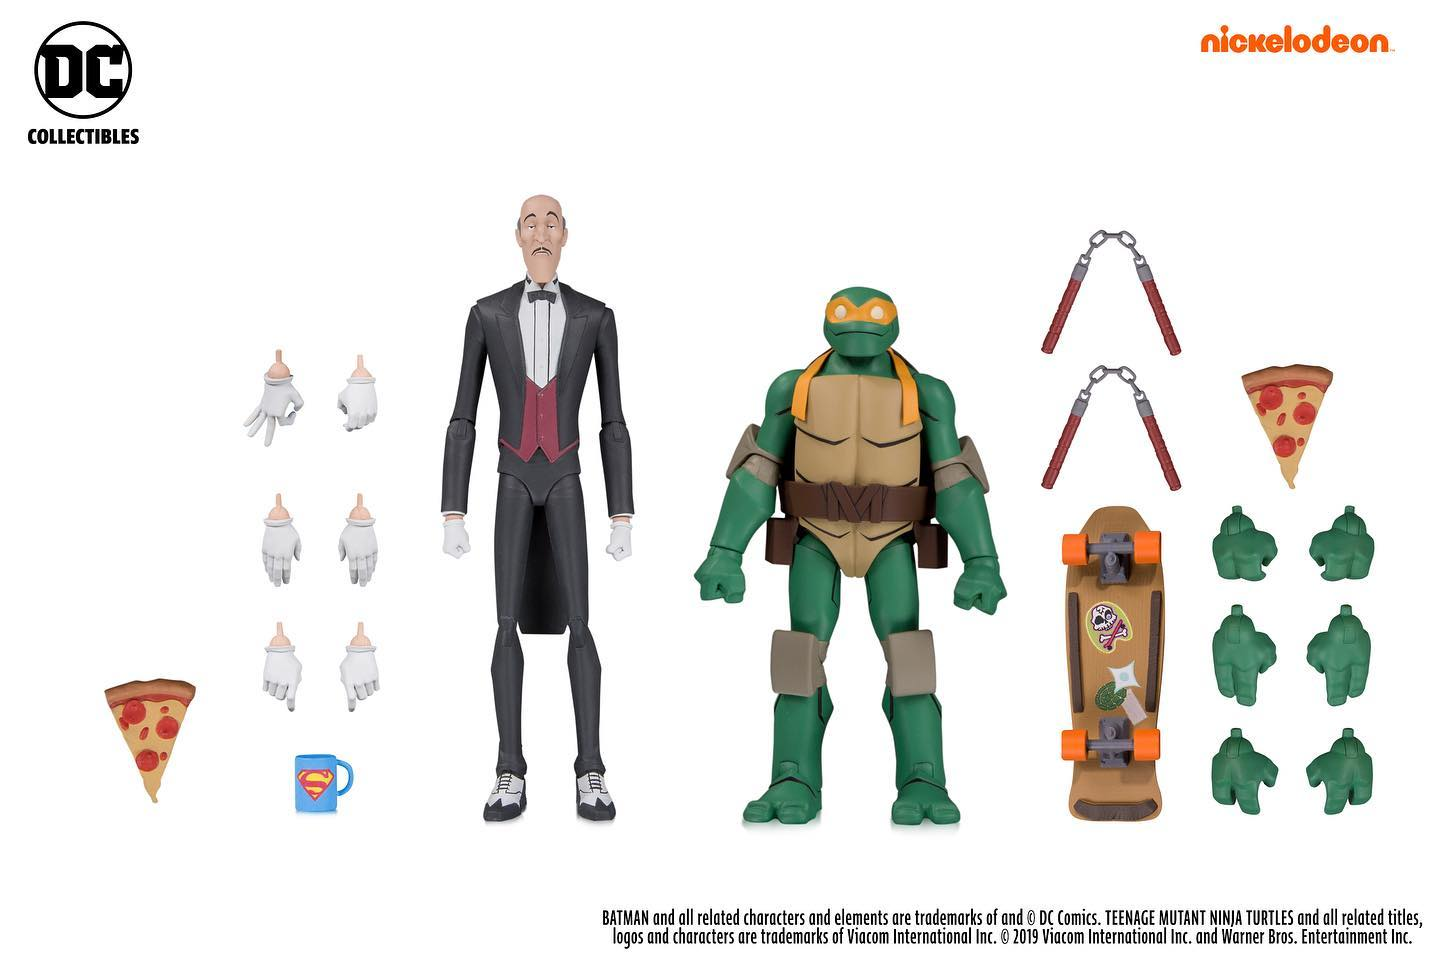 Alfred & Michelangelo (2019 action figure set)